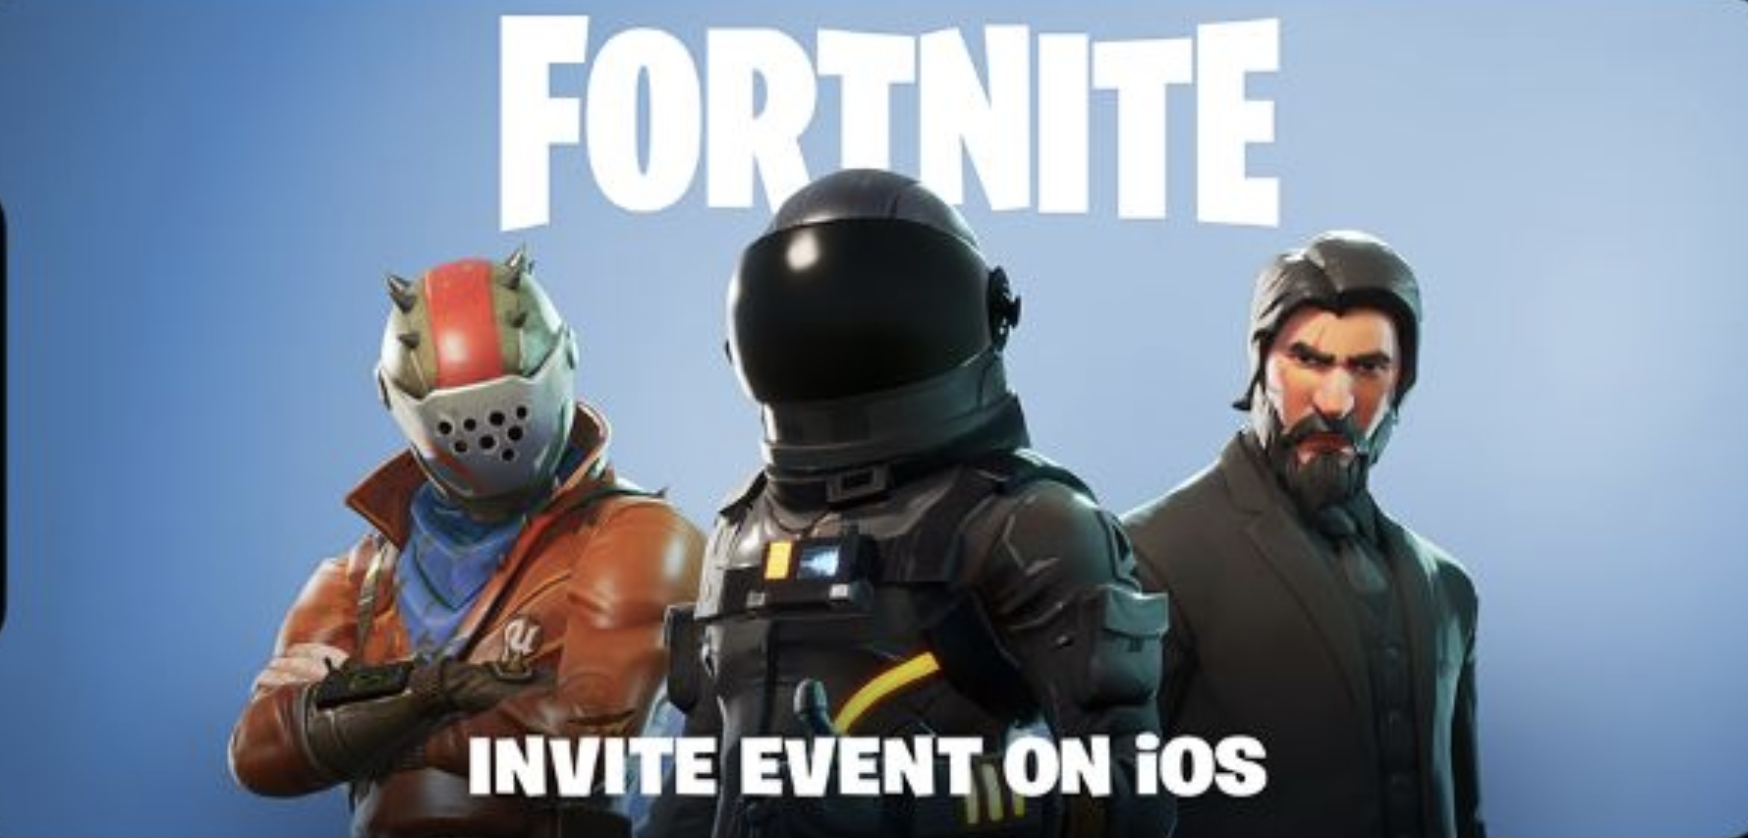 Fake Fortnite Apps for Android Spread Spyware, Cryptominers